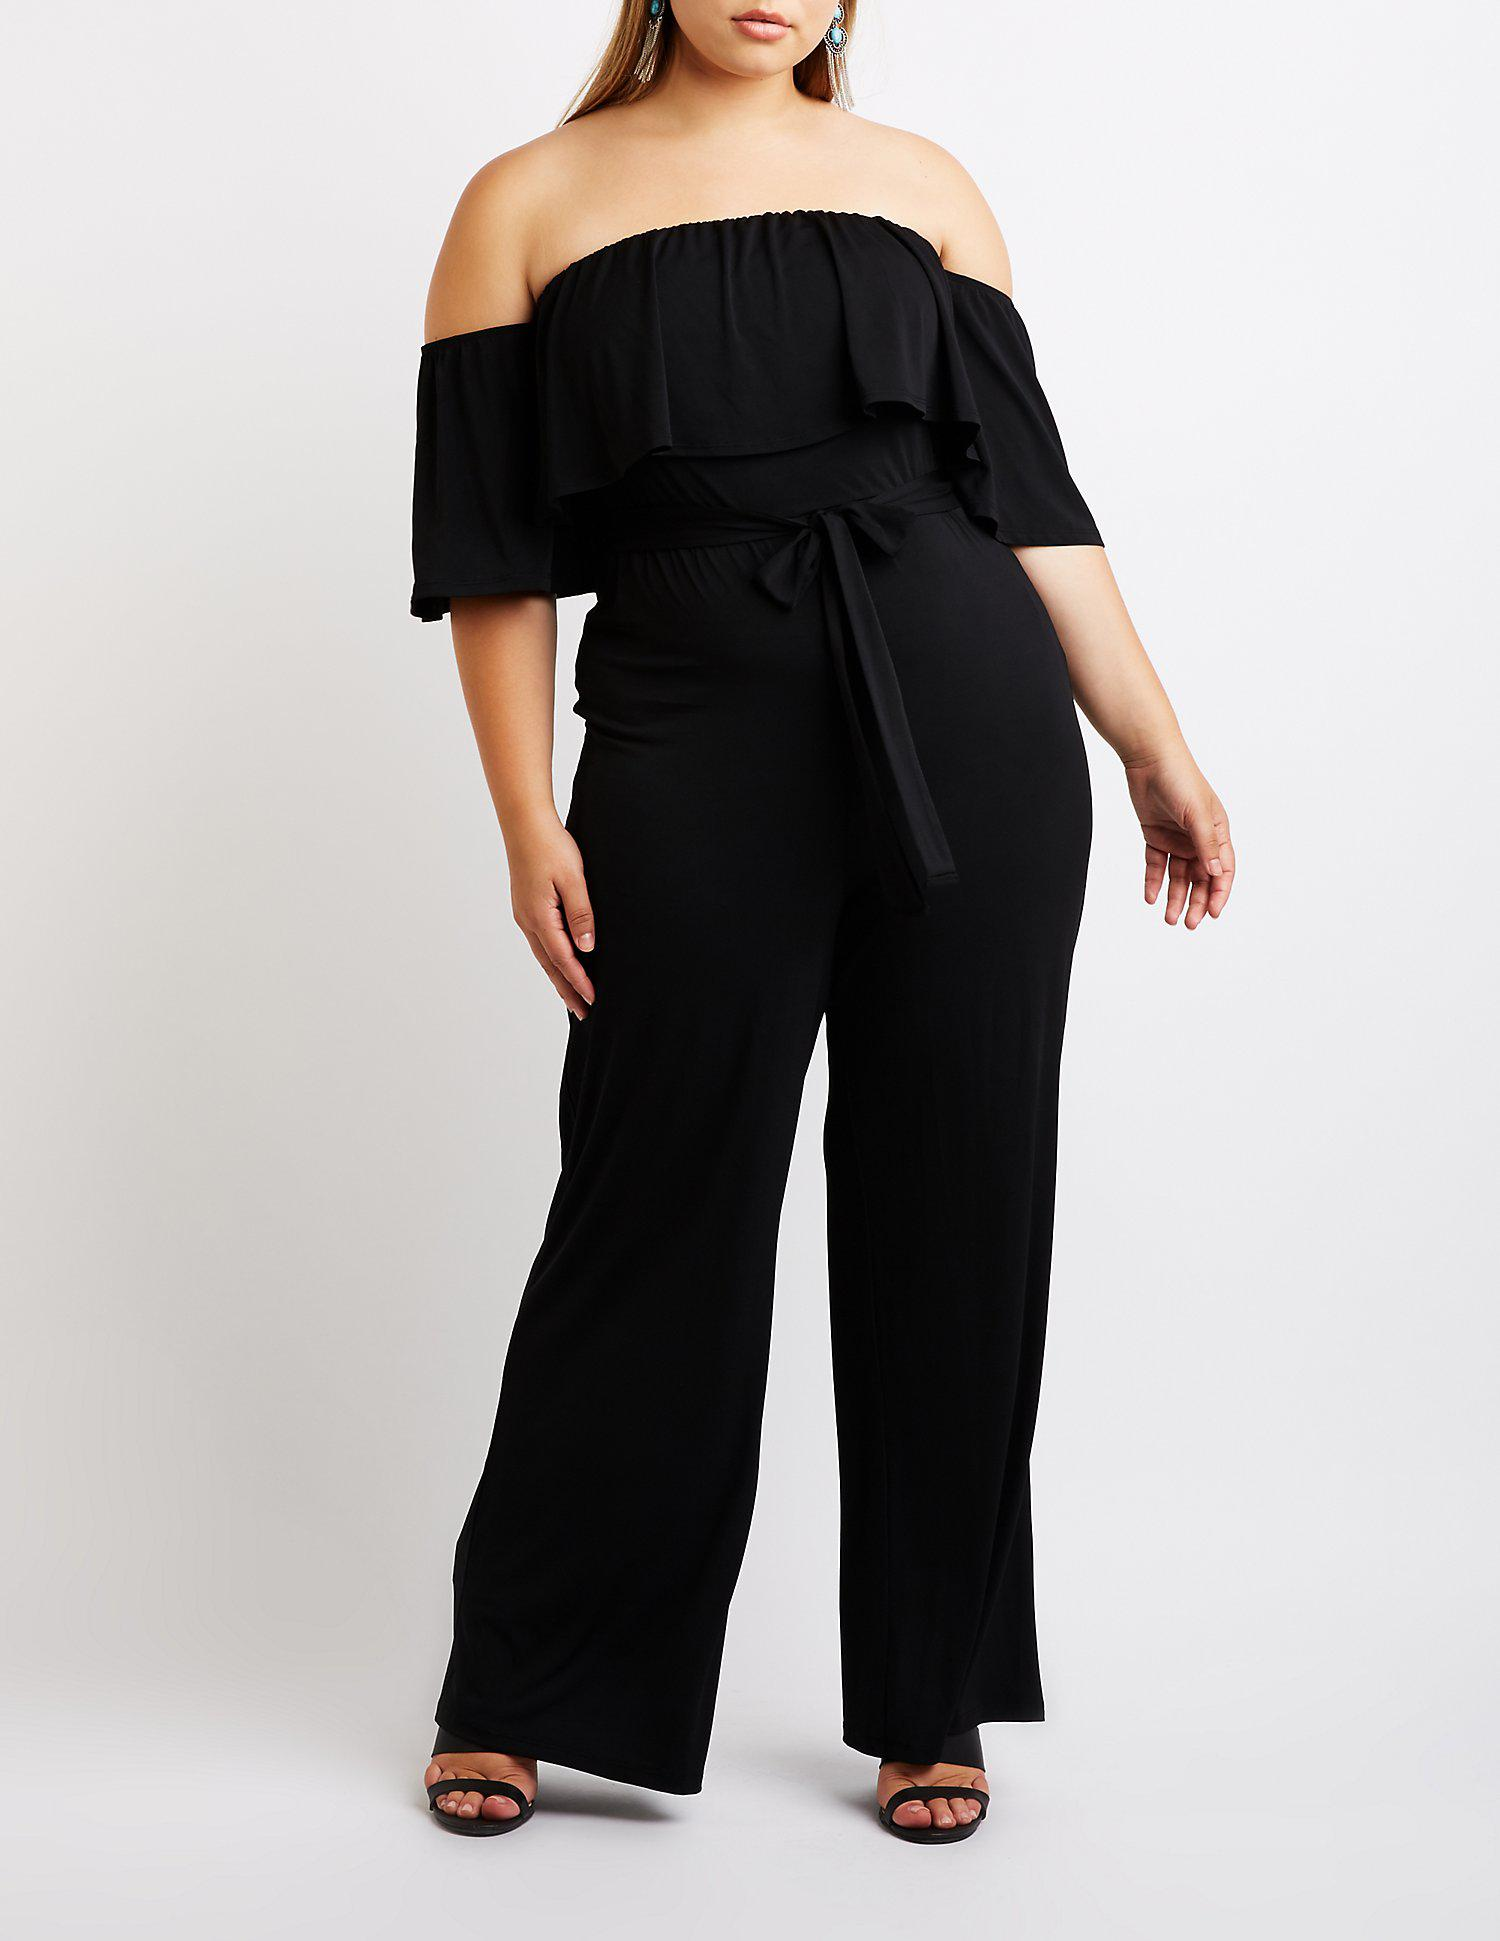 7714324f22f Lyst charlotte russe plus size ruffle off the shoulder jumpsuit jpg  1500x1941 Plus size black jumpsuit